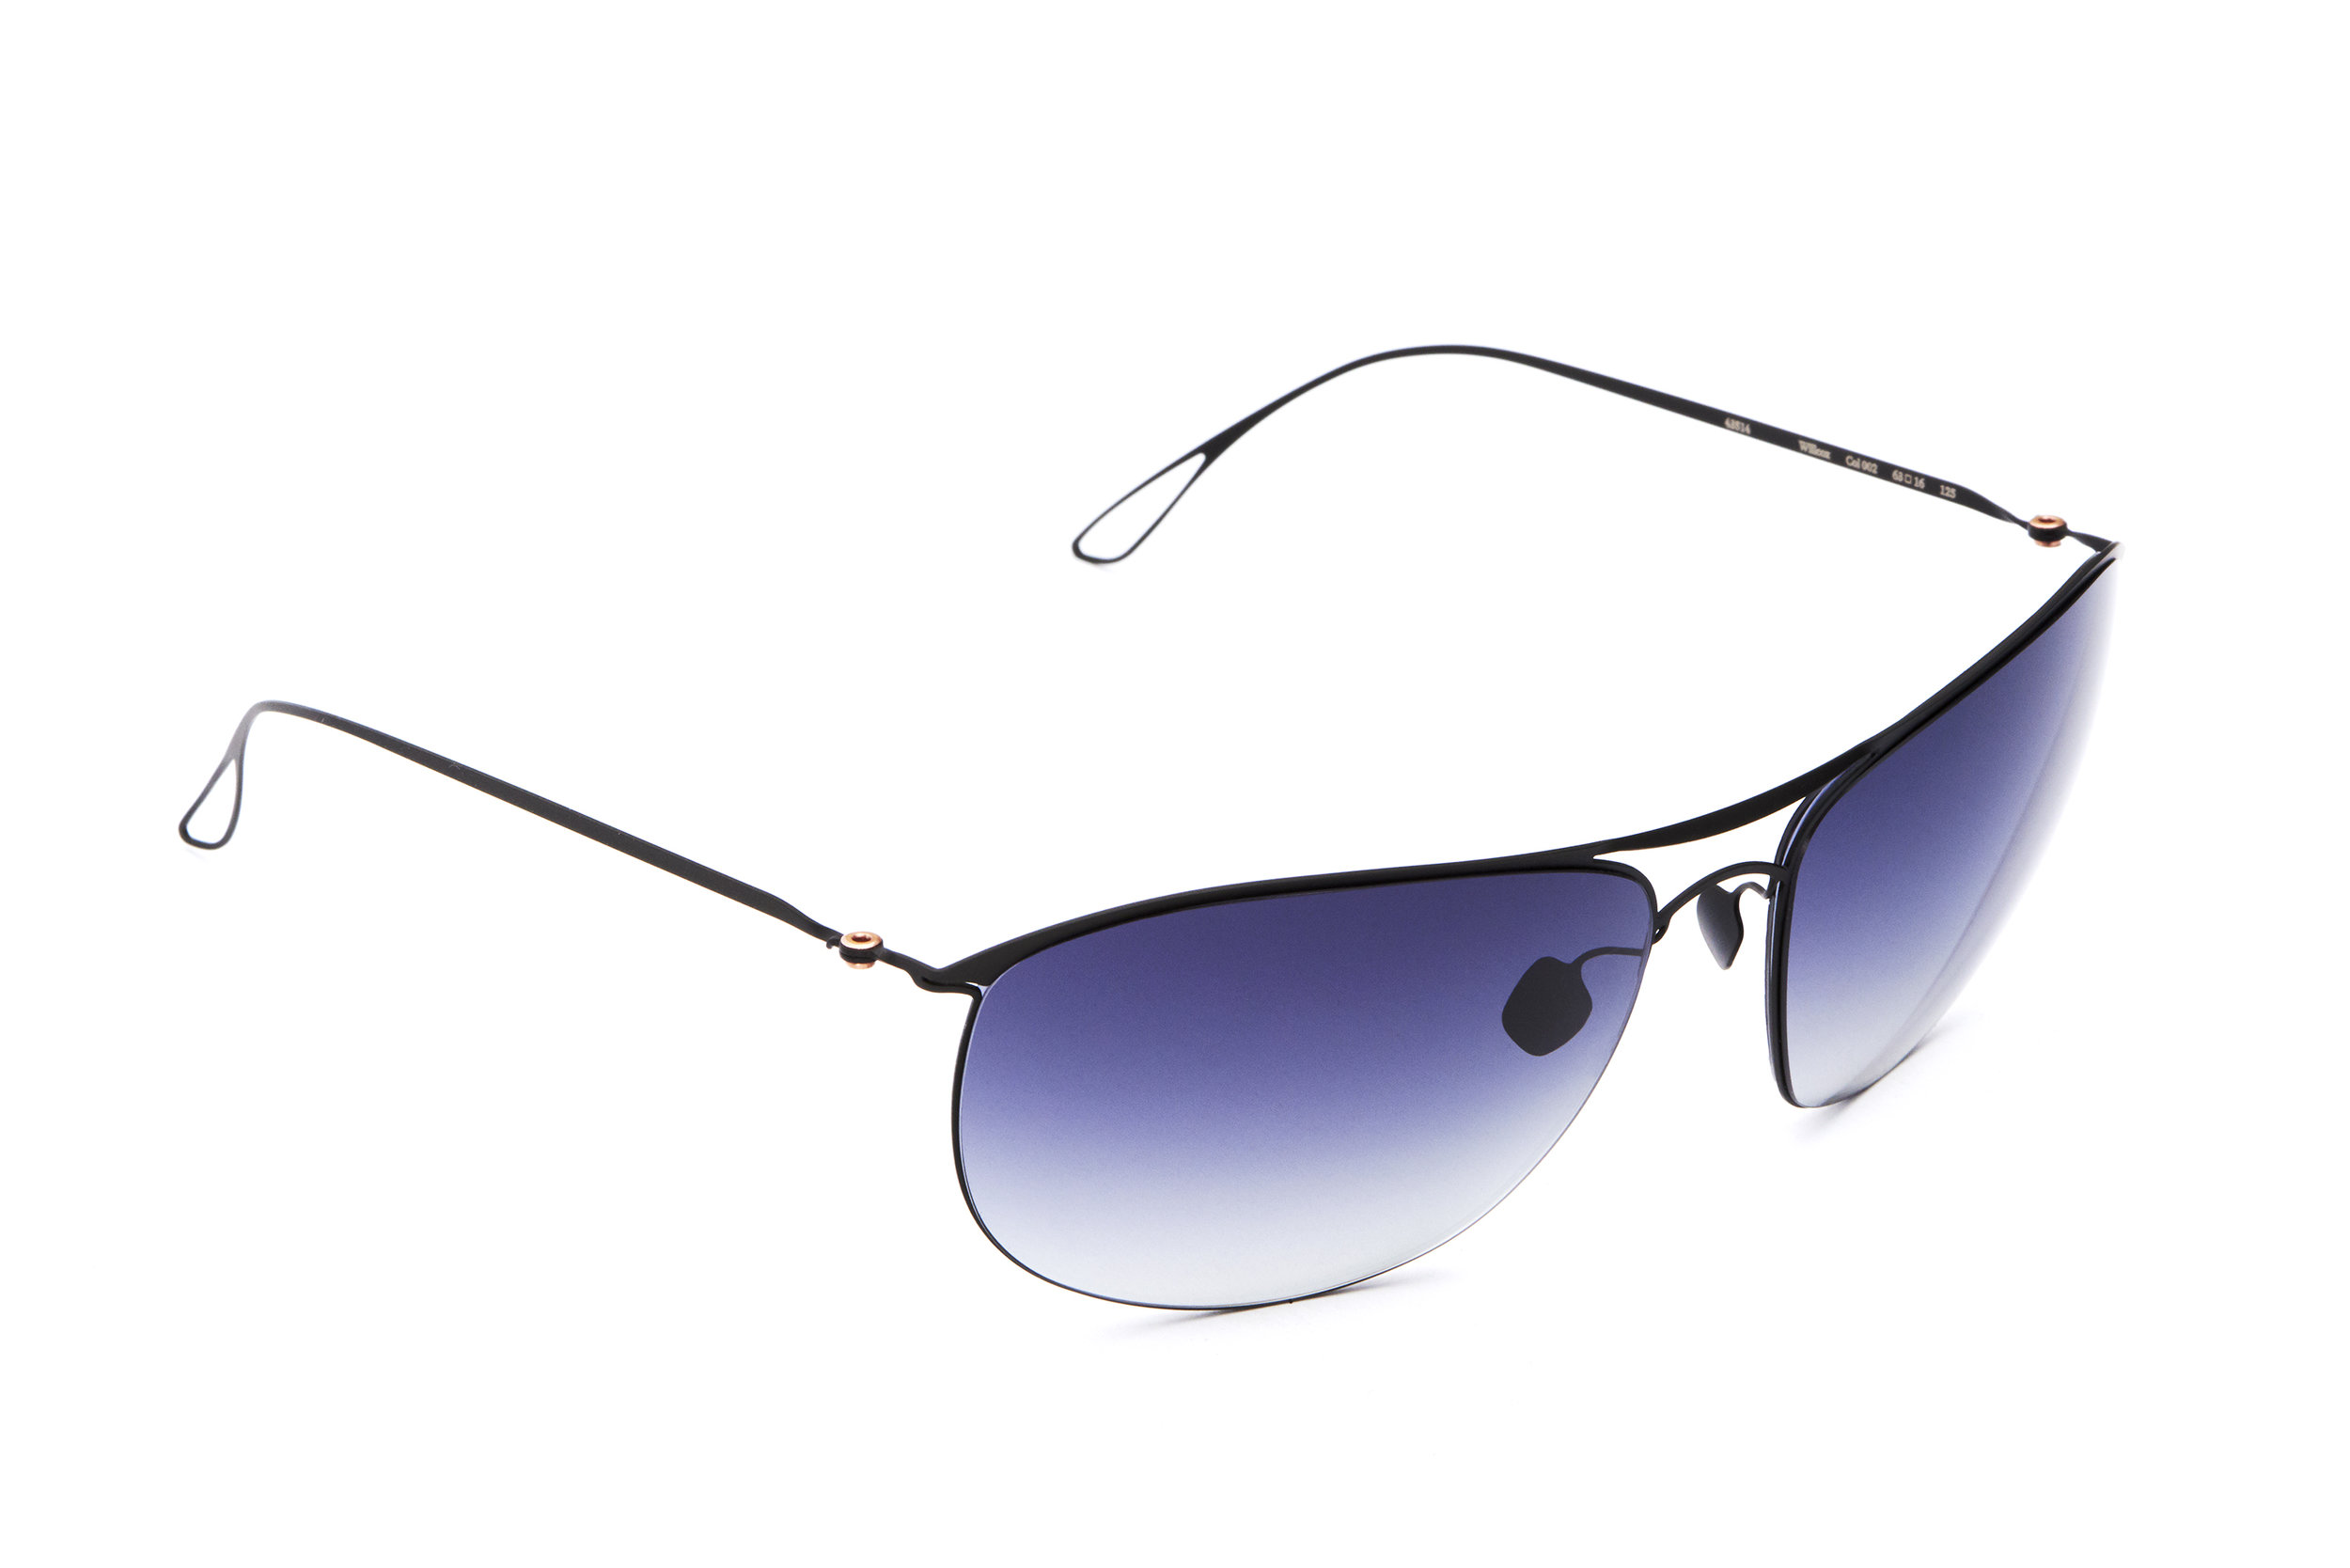 haffmans_neumeister_willcox_black_tempest_gradient_ultralight_sunglasses_angle_102476.jpg